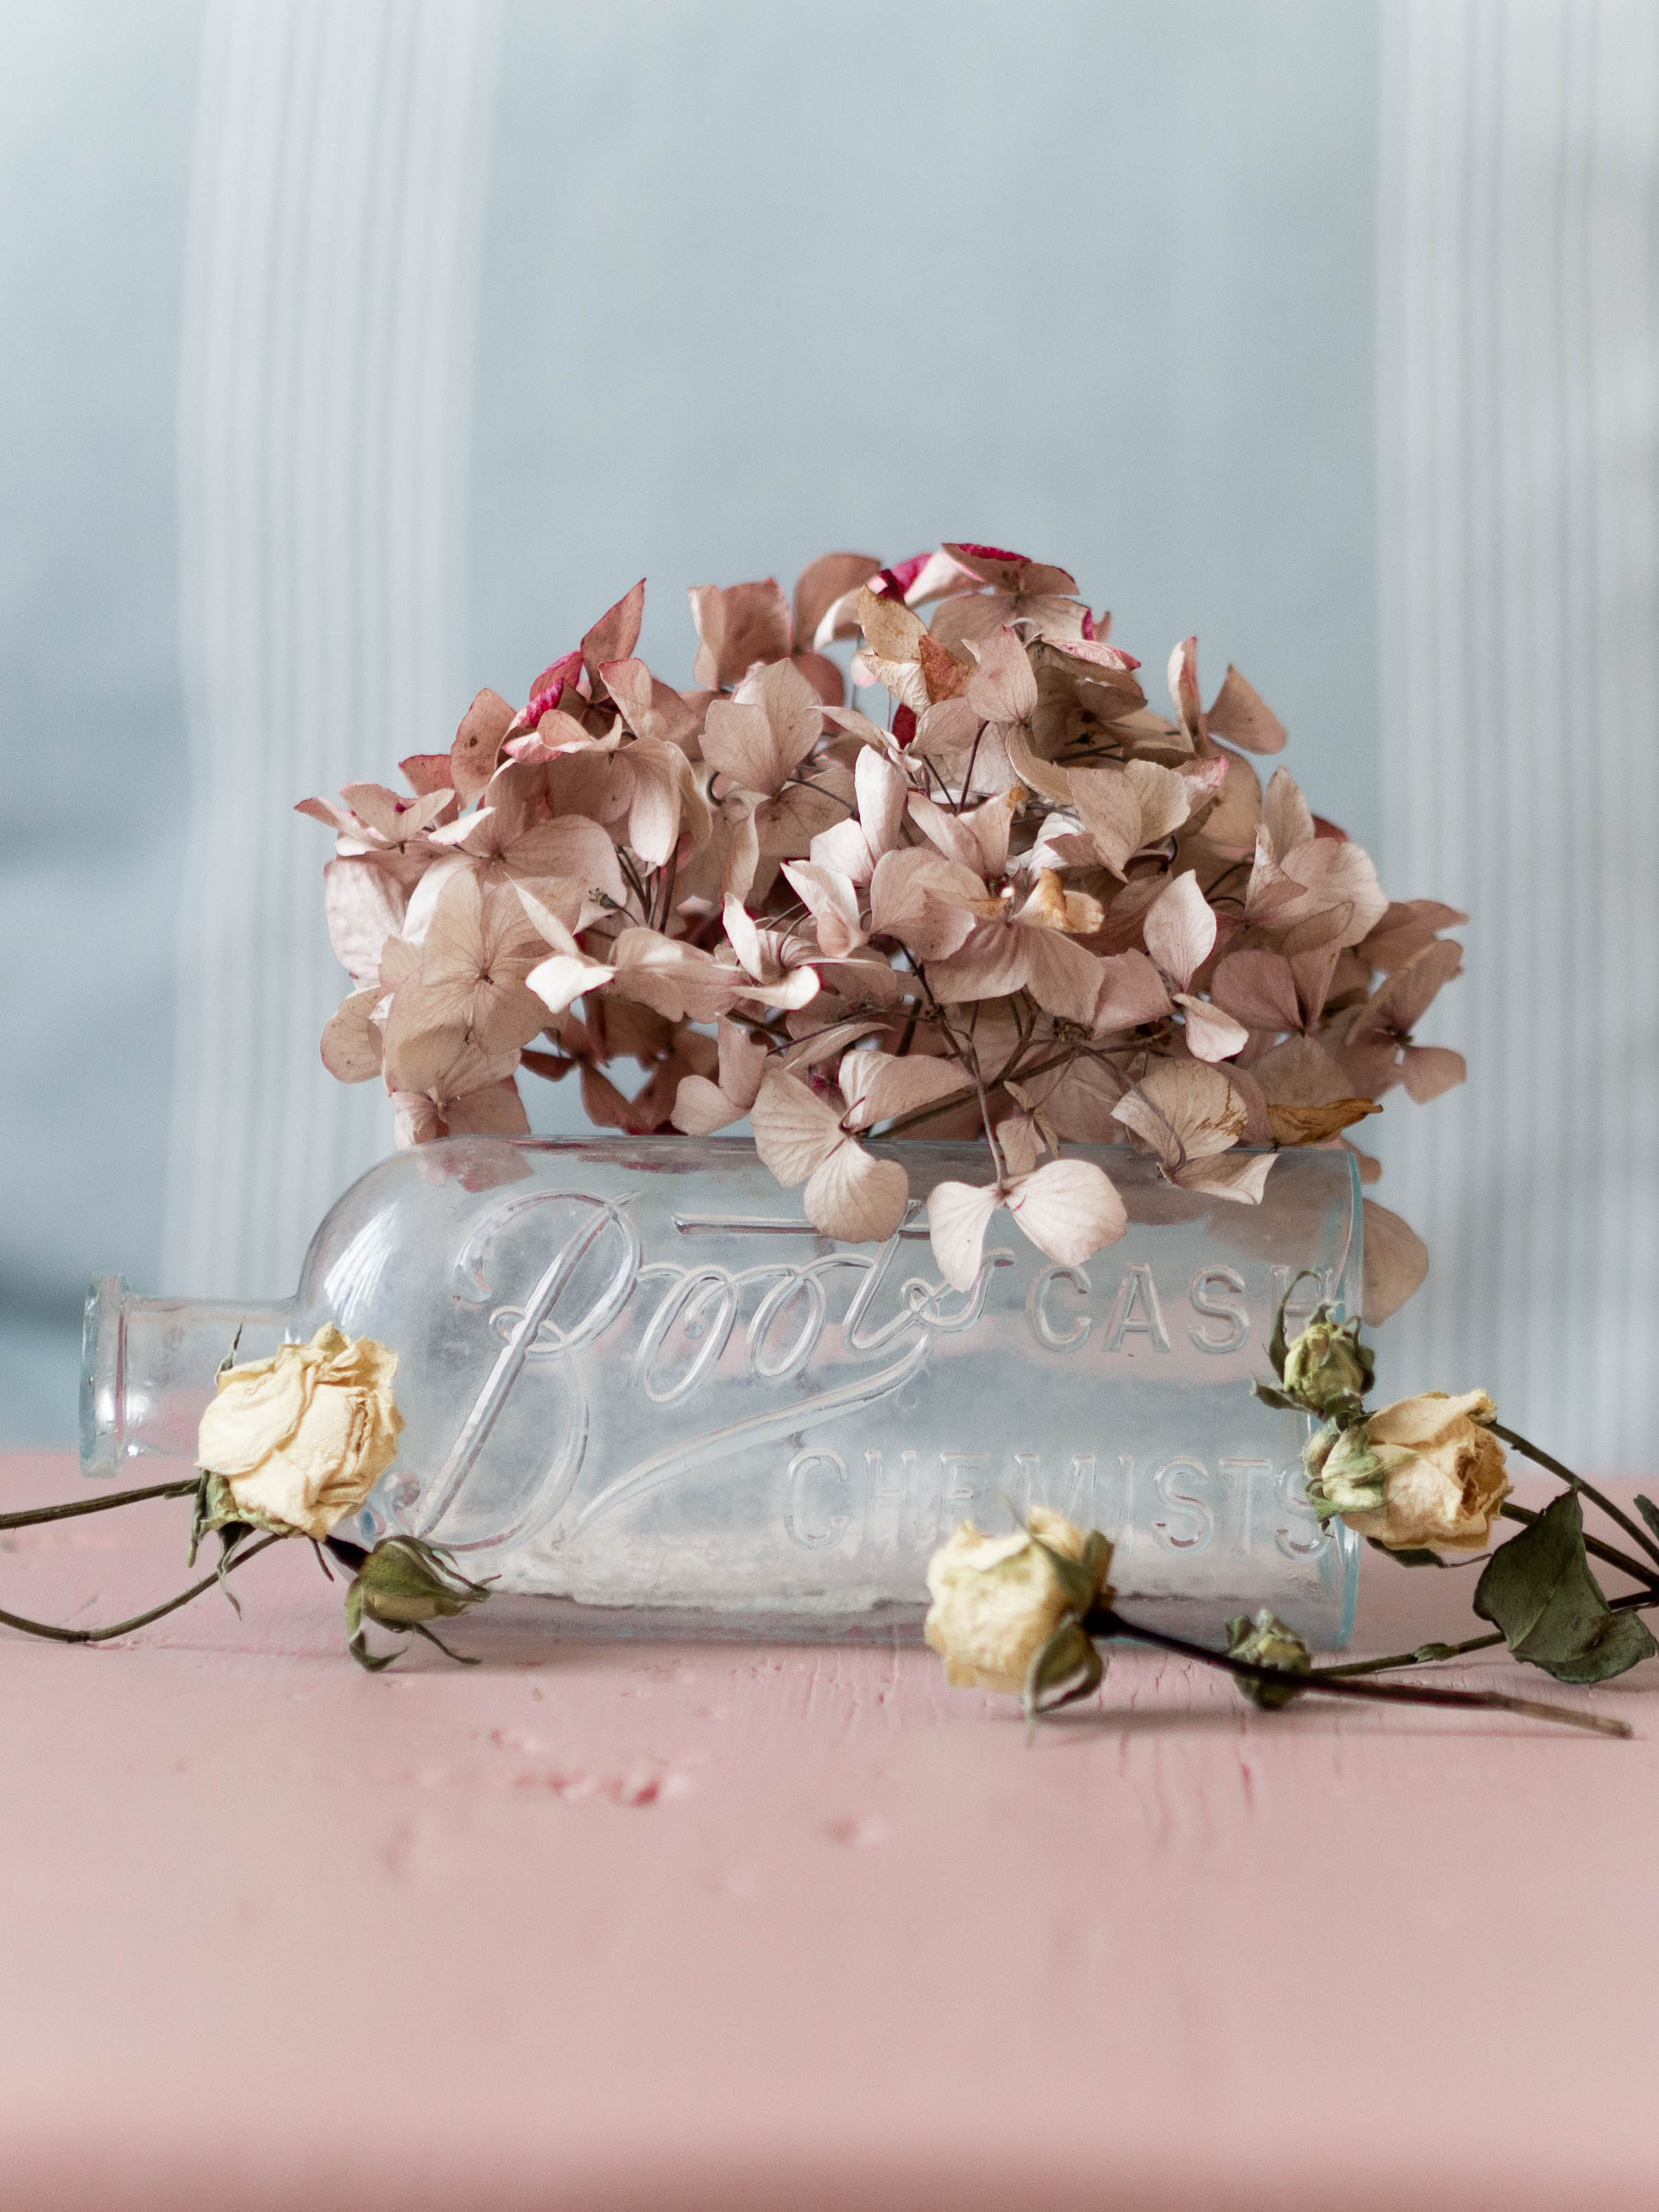 Vintage glass bottle from Boots Cash Chemist on pink table with dried cream roses and dried pink hydrangea